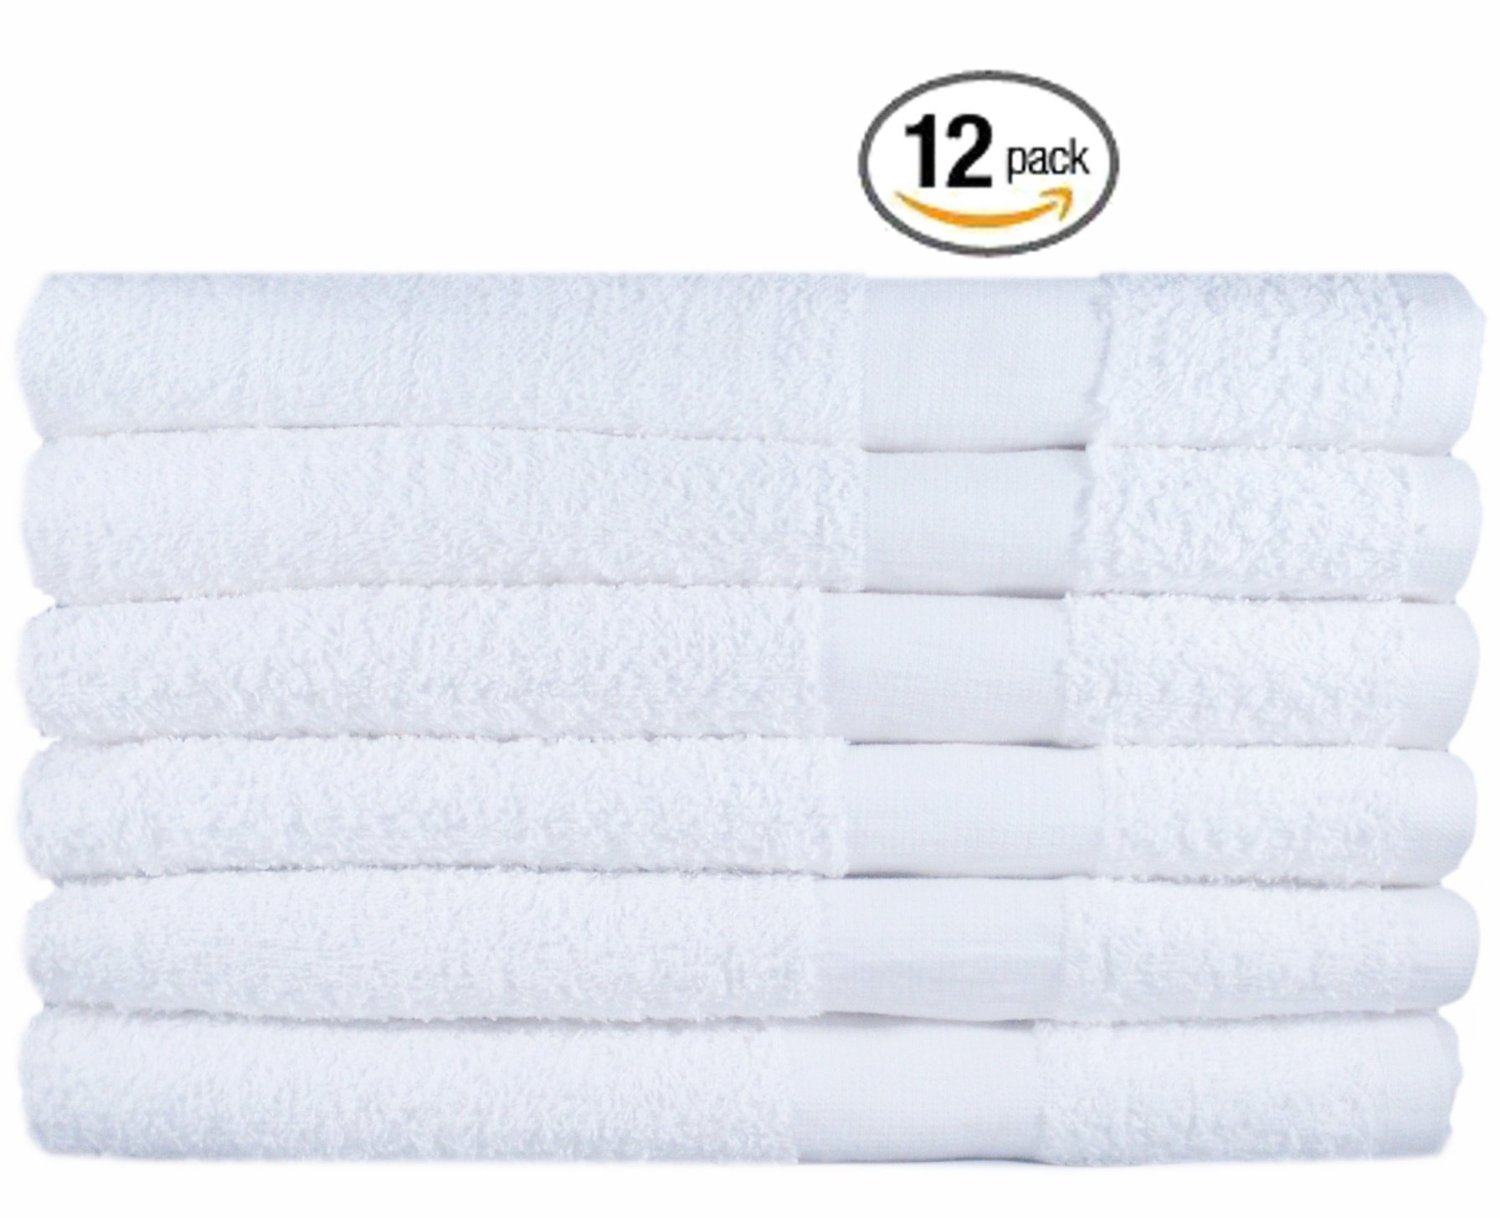 Hotel-Spa Commercial Cotton Hair Bath Towel -12-Pack, White, Maximum Softness and Absorbency (20″ x 40″) by Utopia Towel review